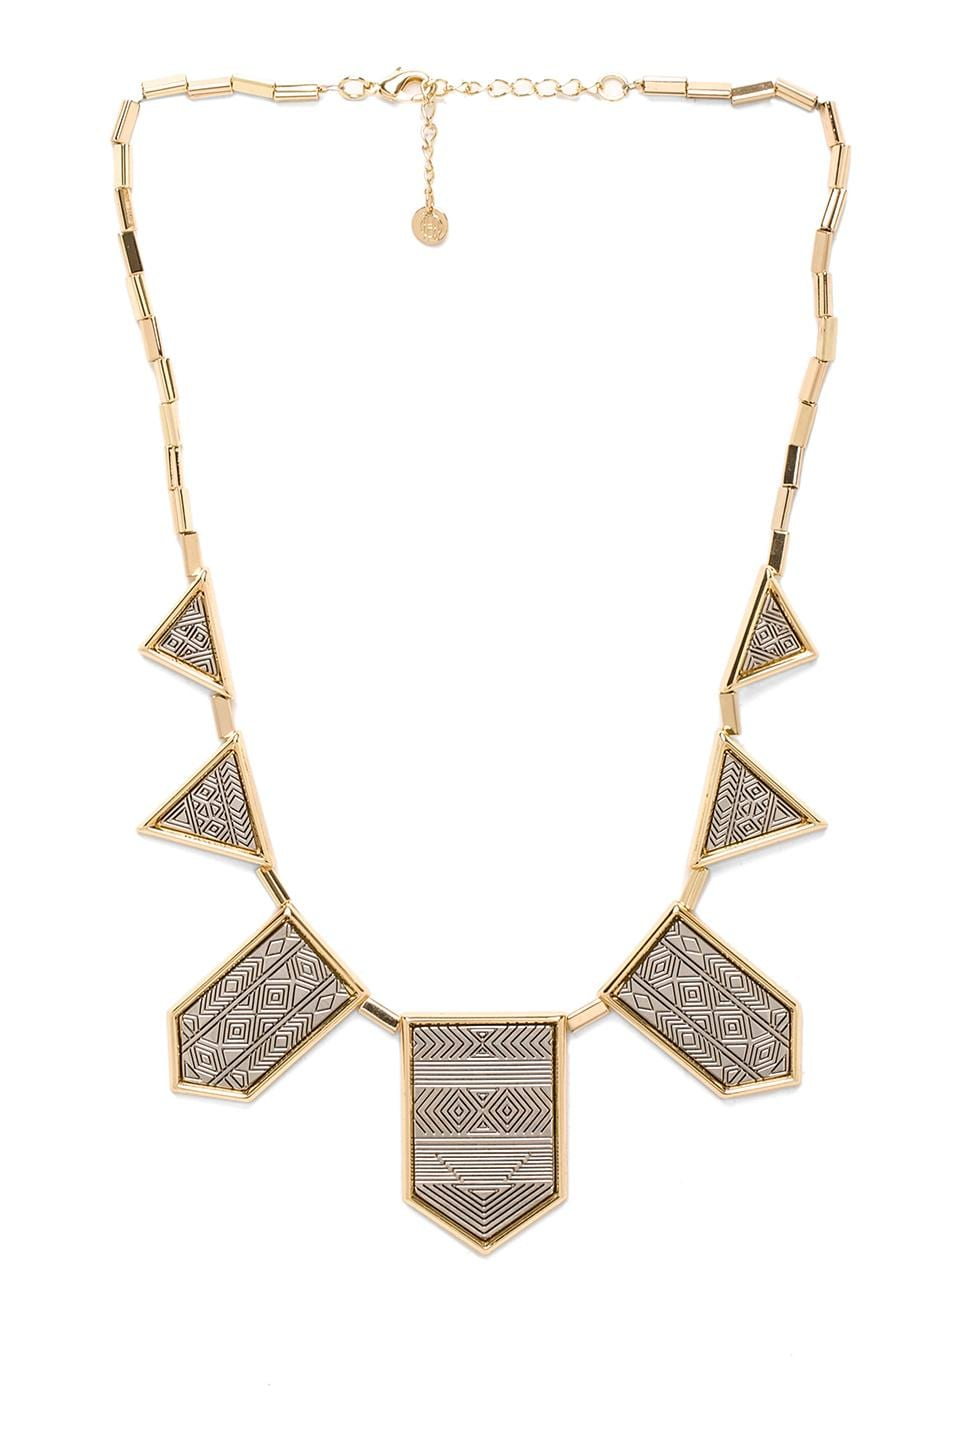 House of Harlow 1960 House of Harlow Engraved Classic Station Necklace in Gold/Silver